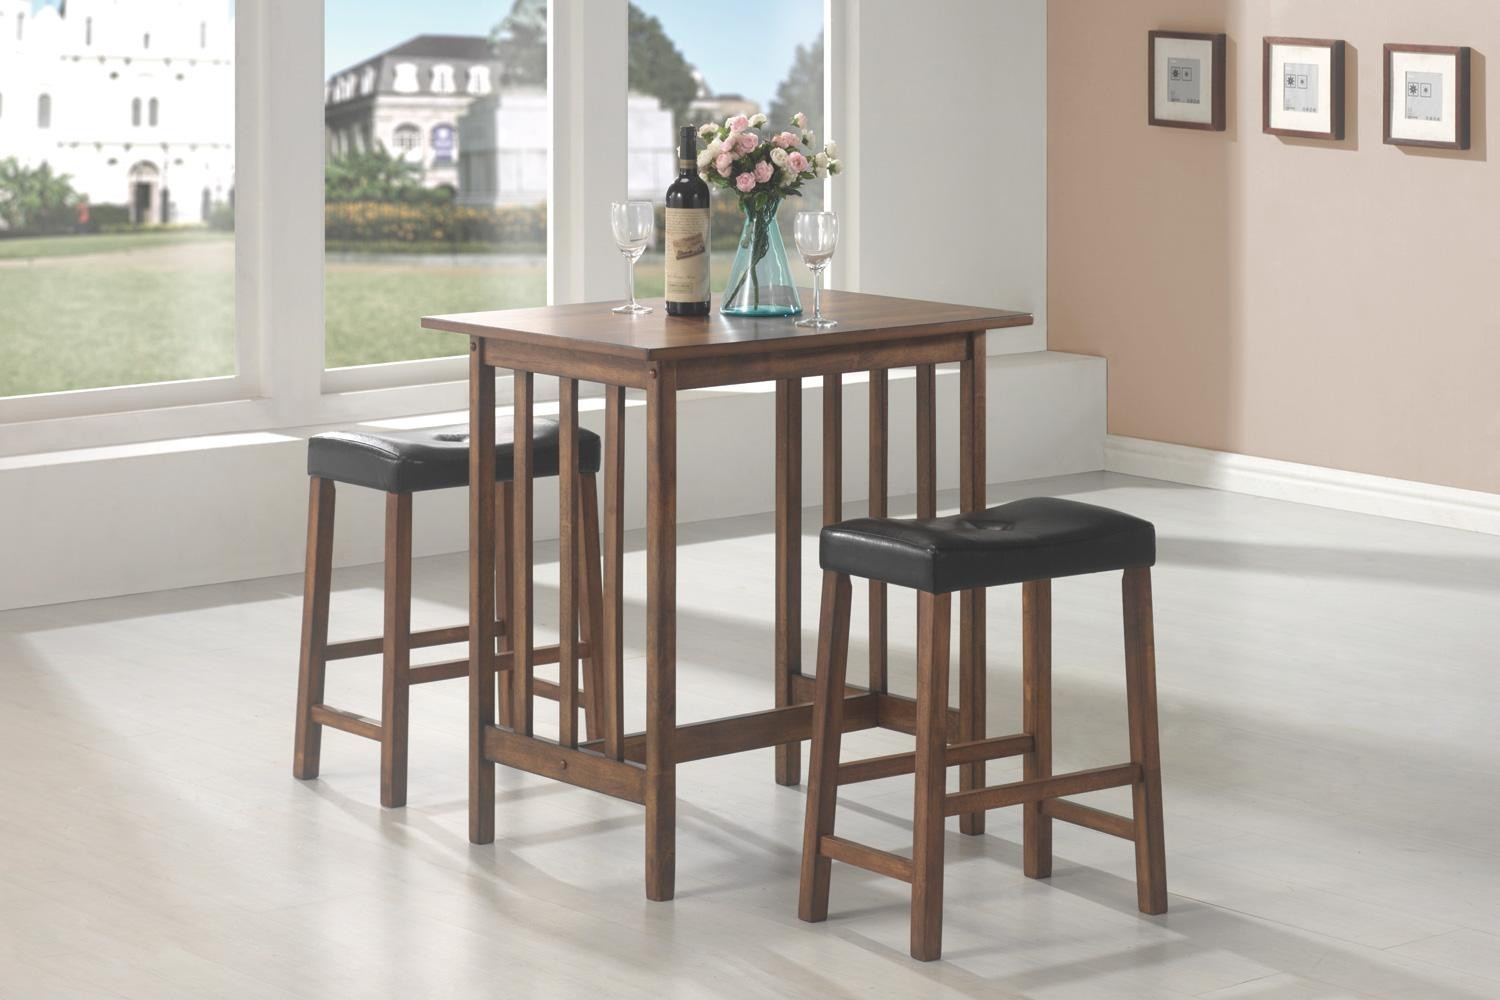 black 3 pcs counter height dining dinette set 130004 from coaster